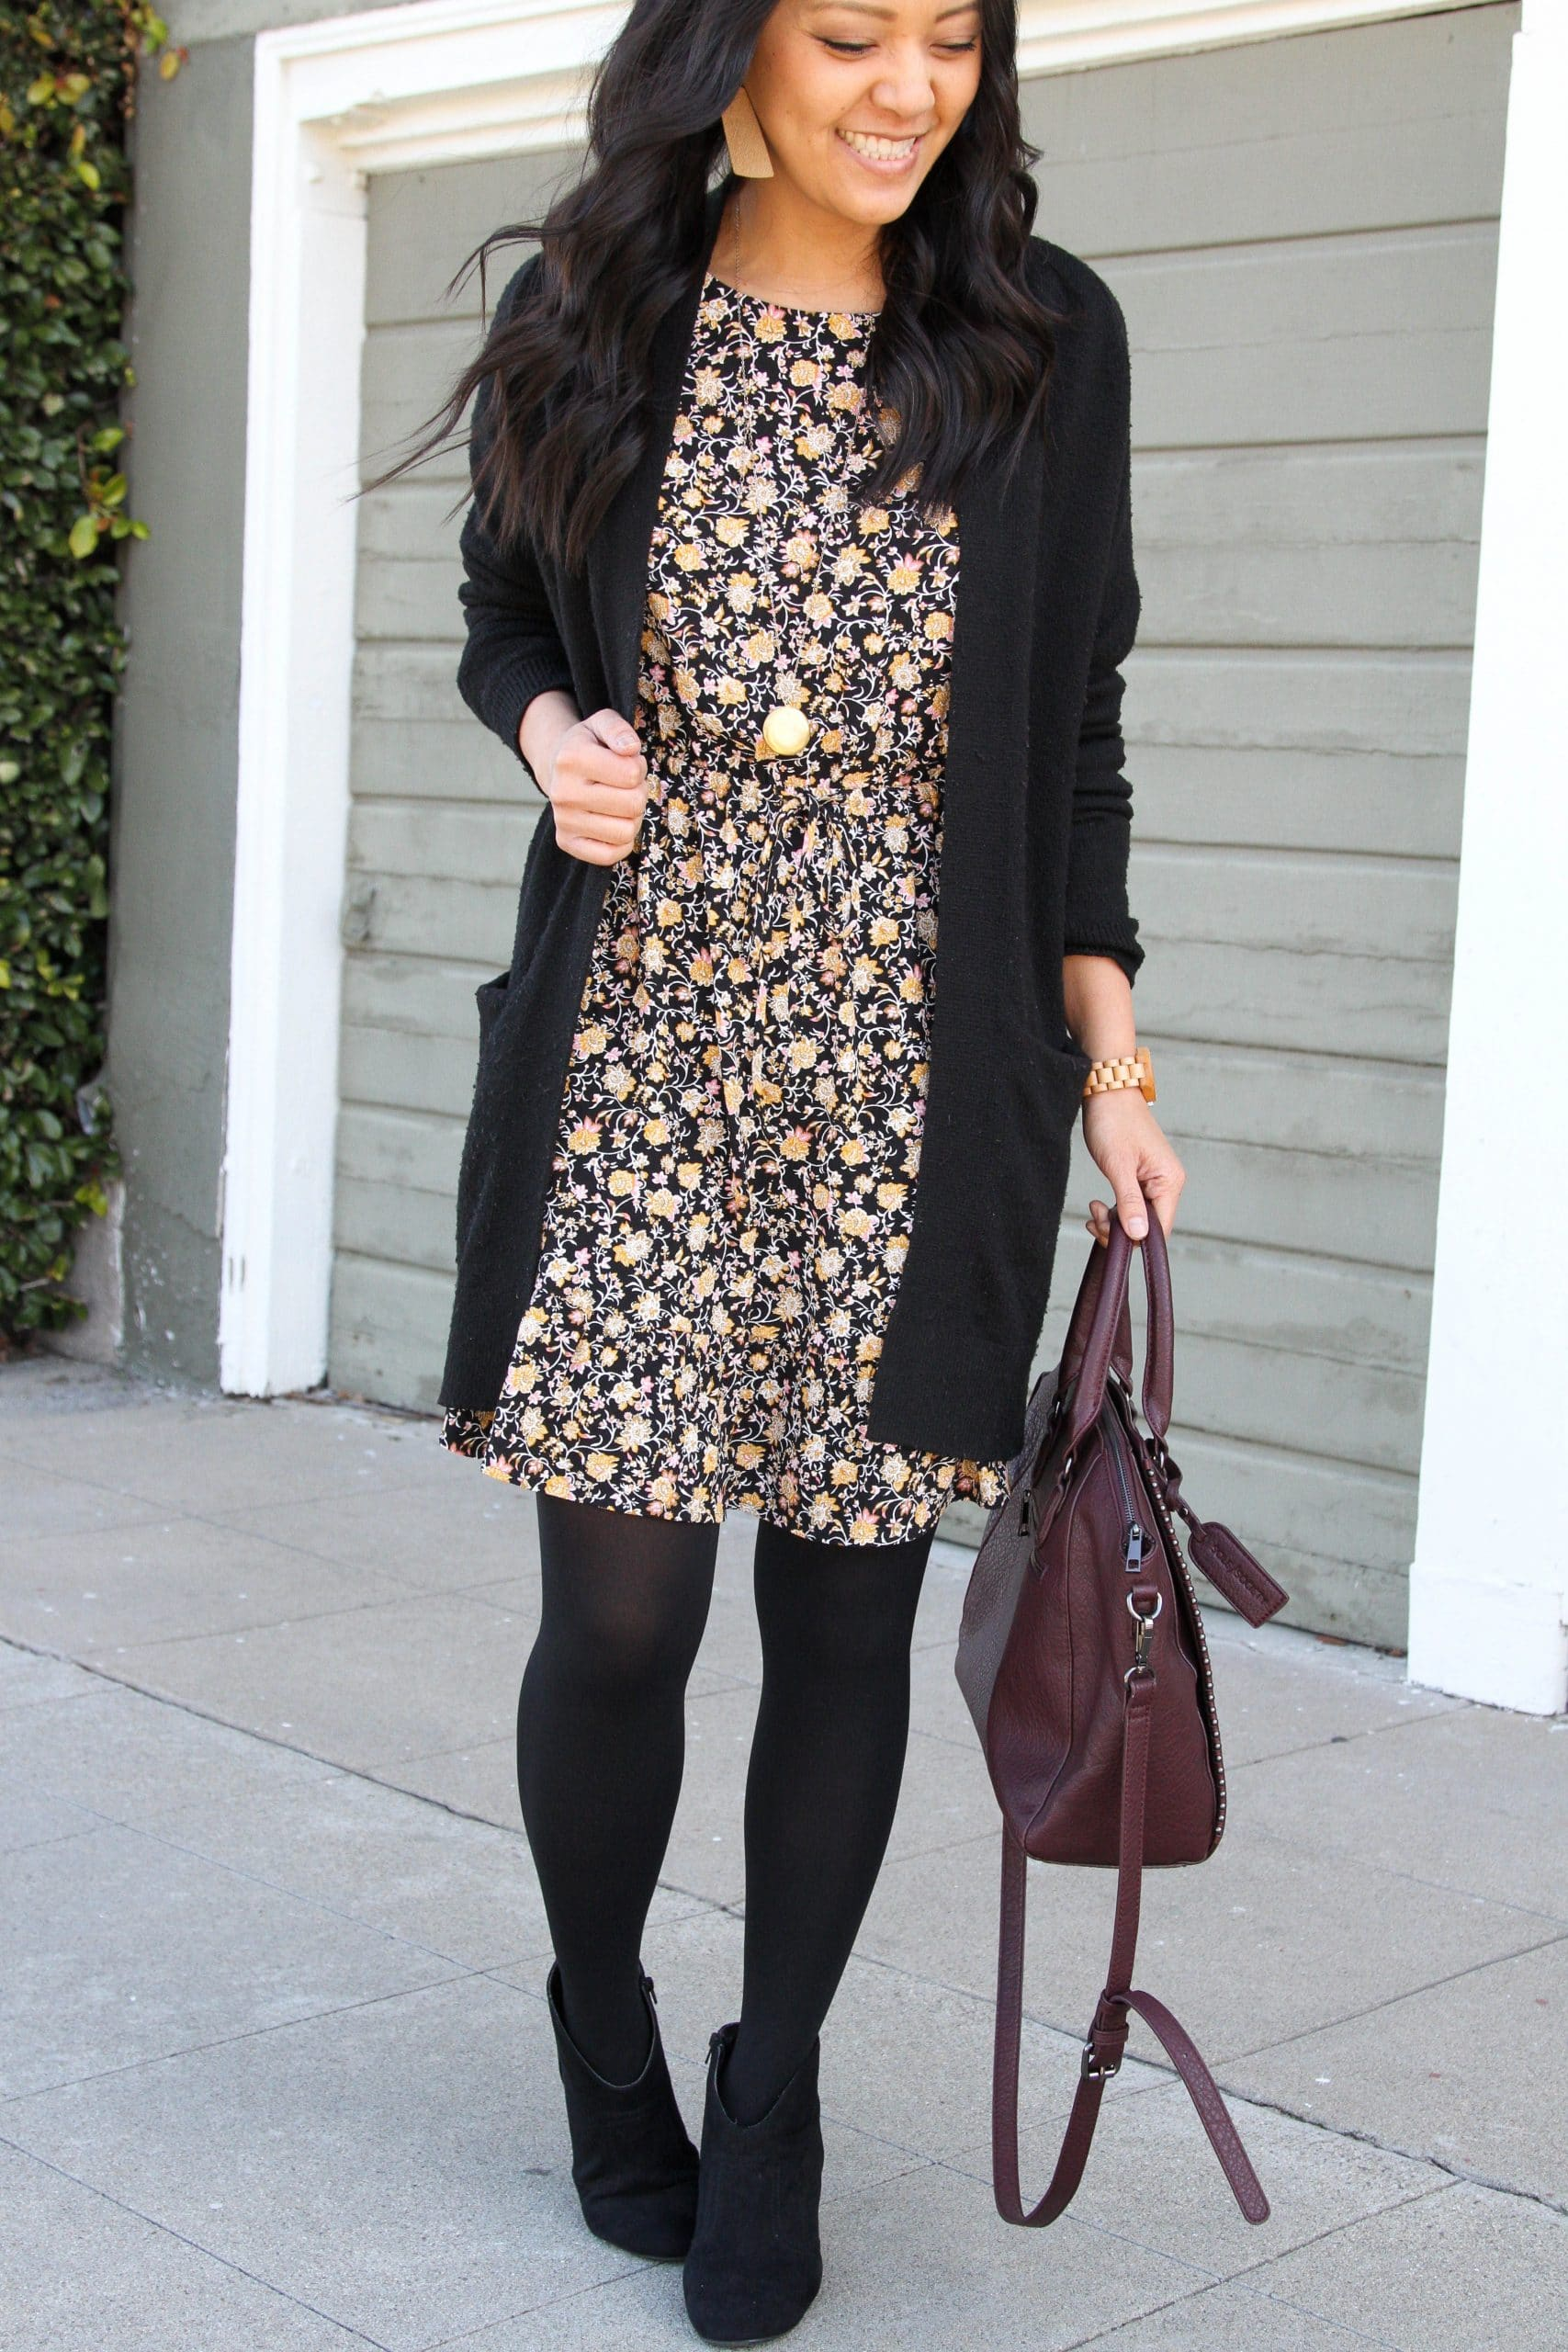 black floral dress + black tights + black long sweater + black booties